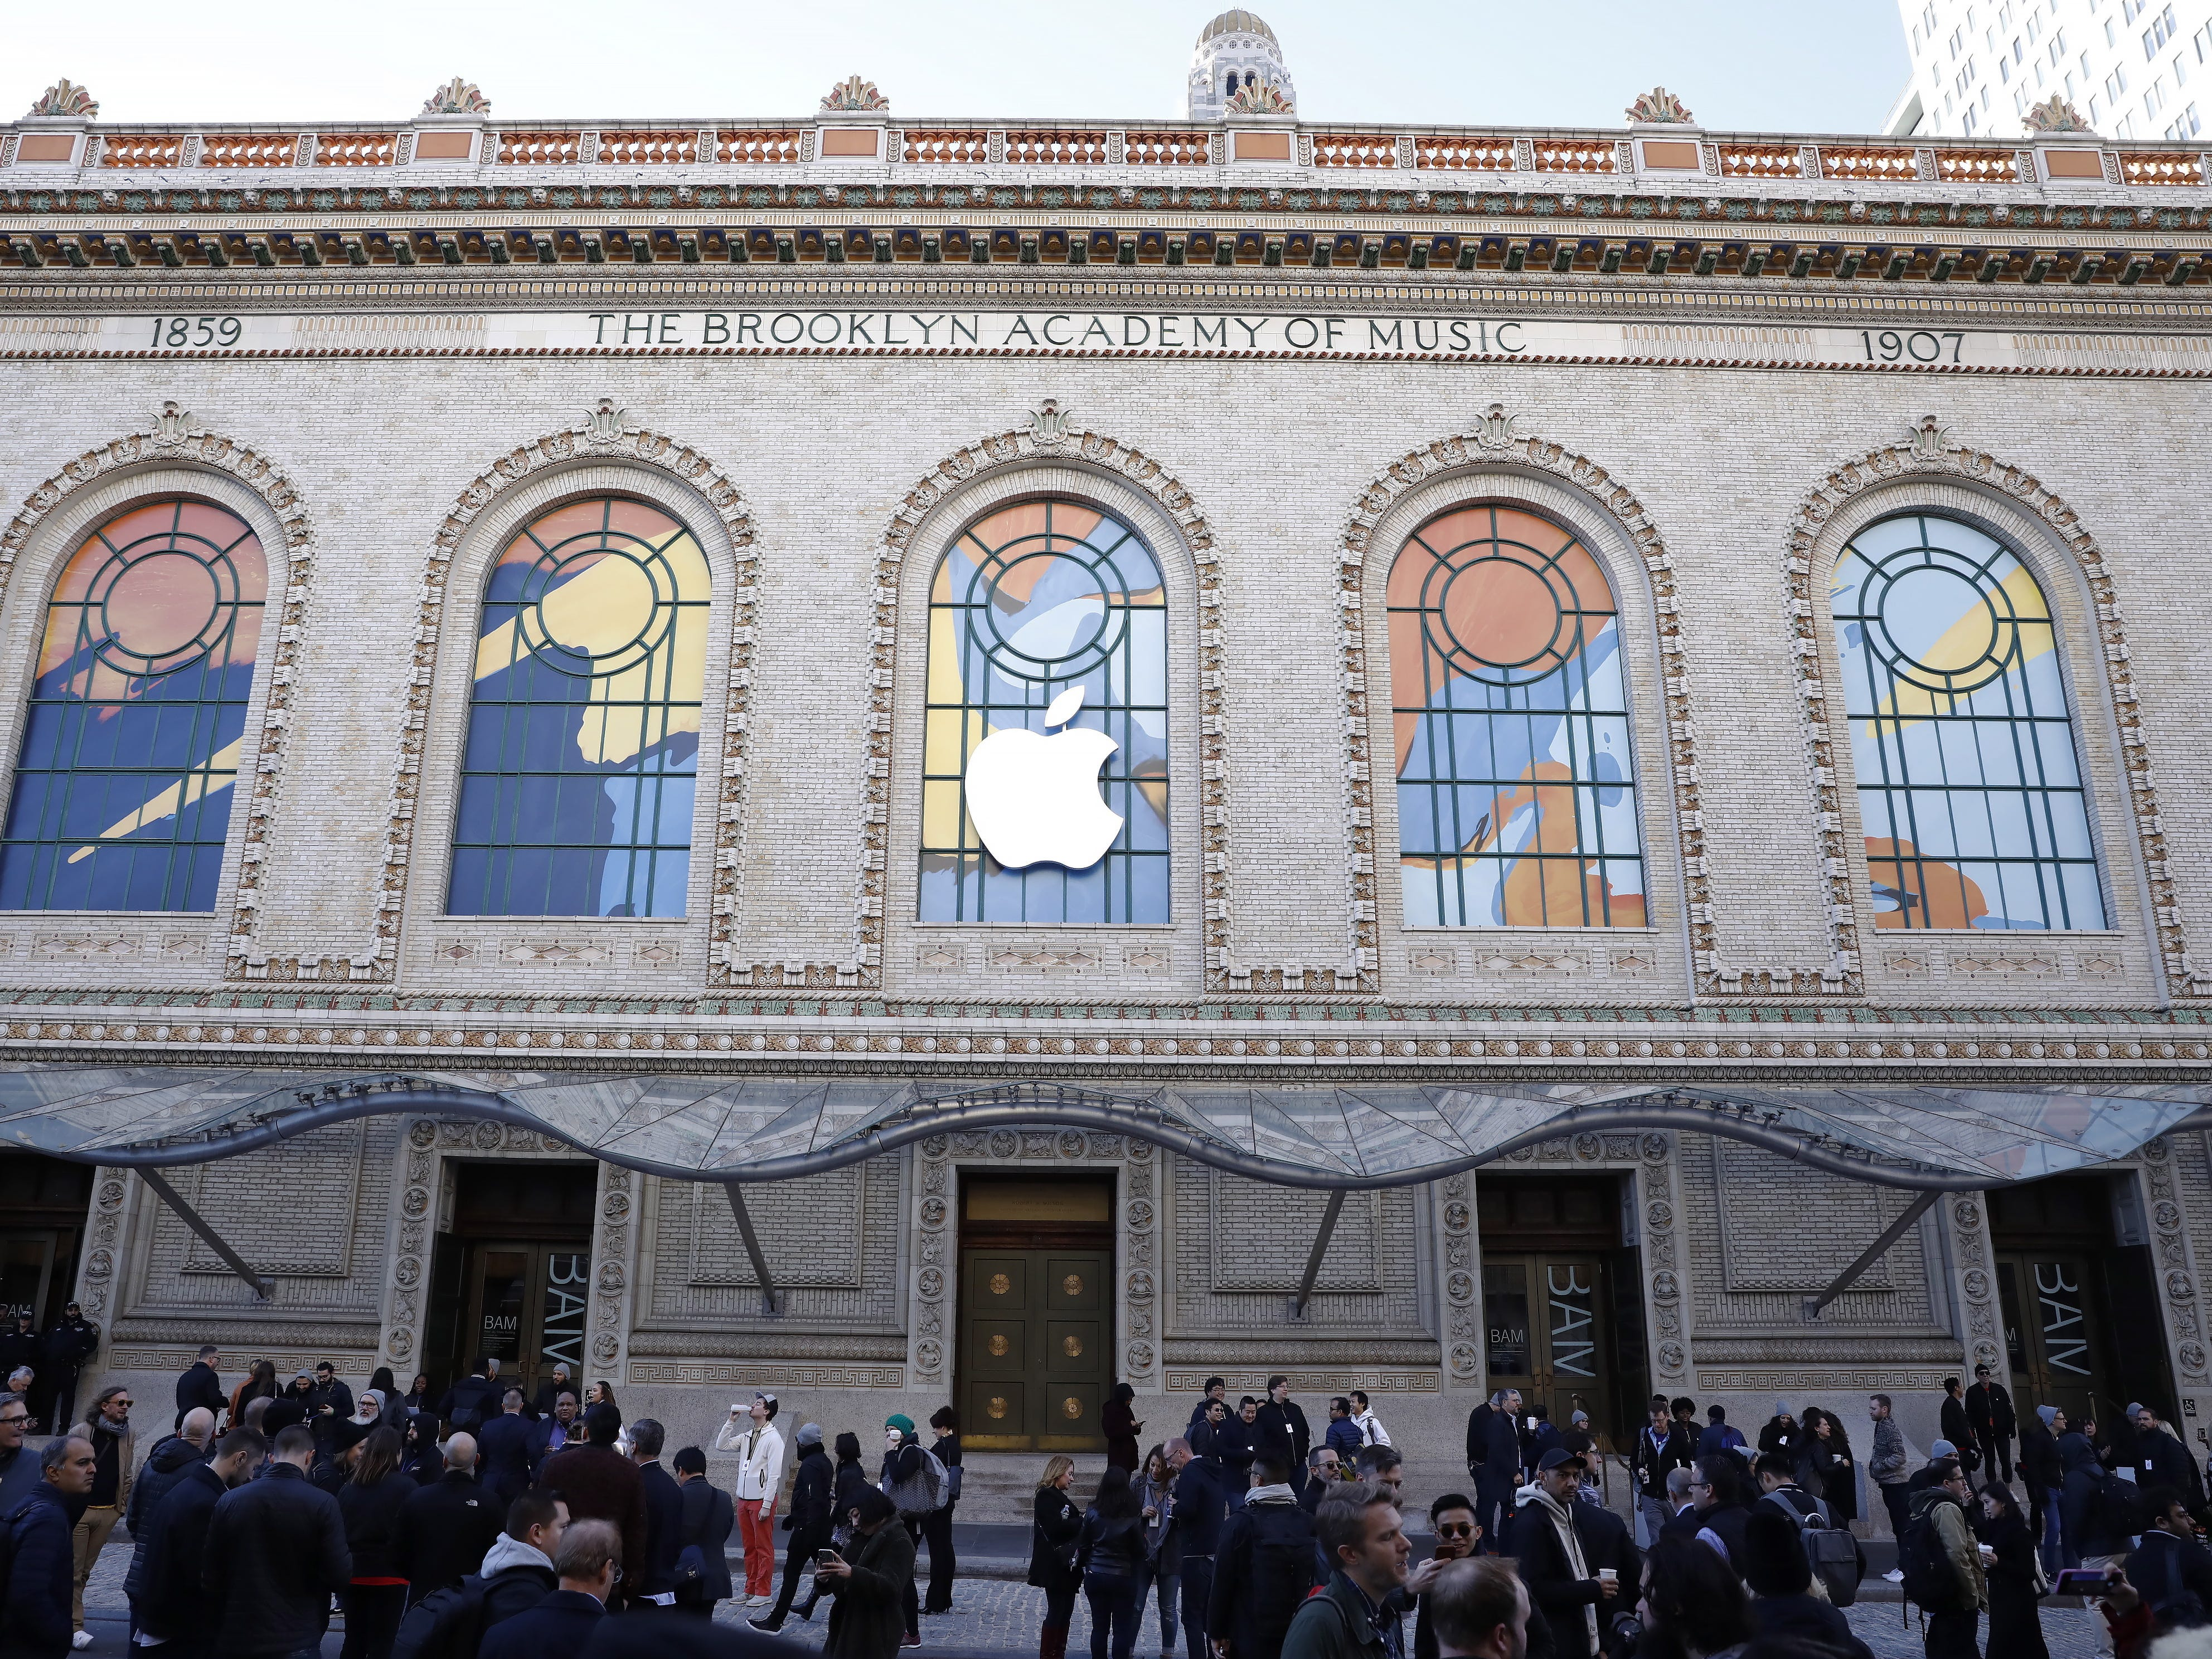 Media begin to gather outside the Howard Gilman Opera House at the Brooklyn Academy of Music before the start of an Apple event in New York, Tuesday, Oct. 30, 2018.